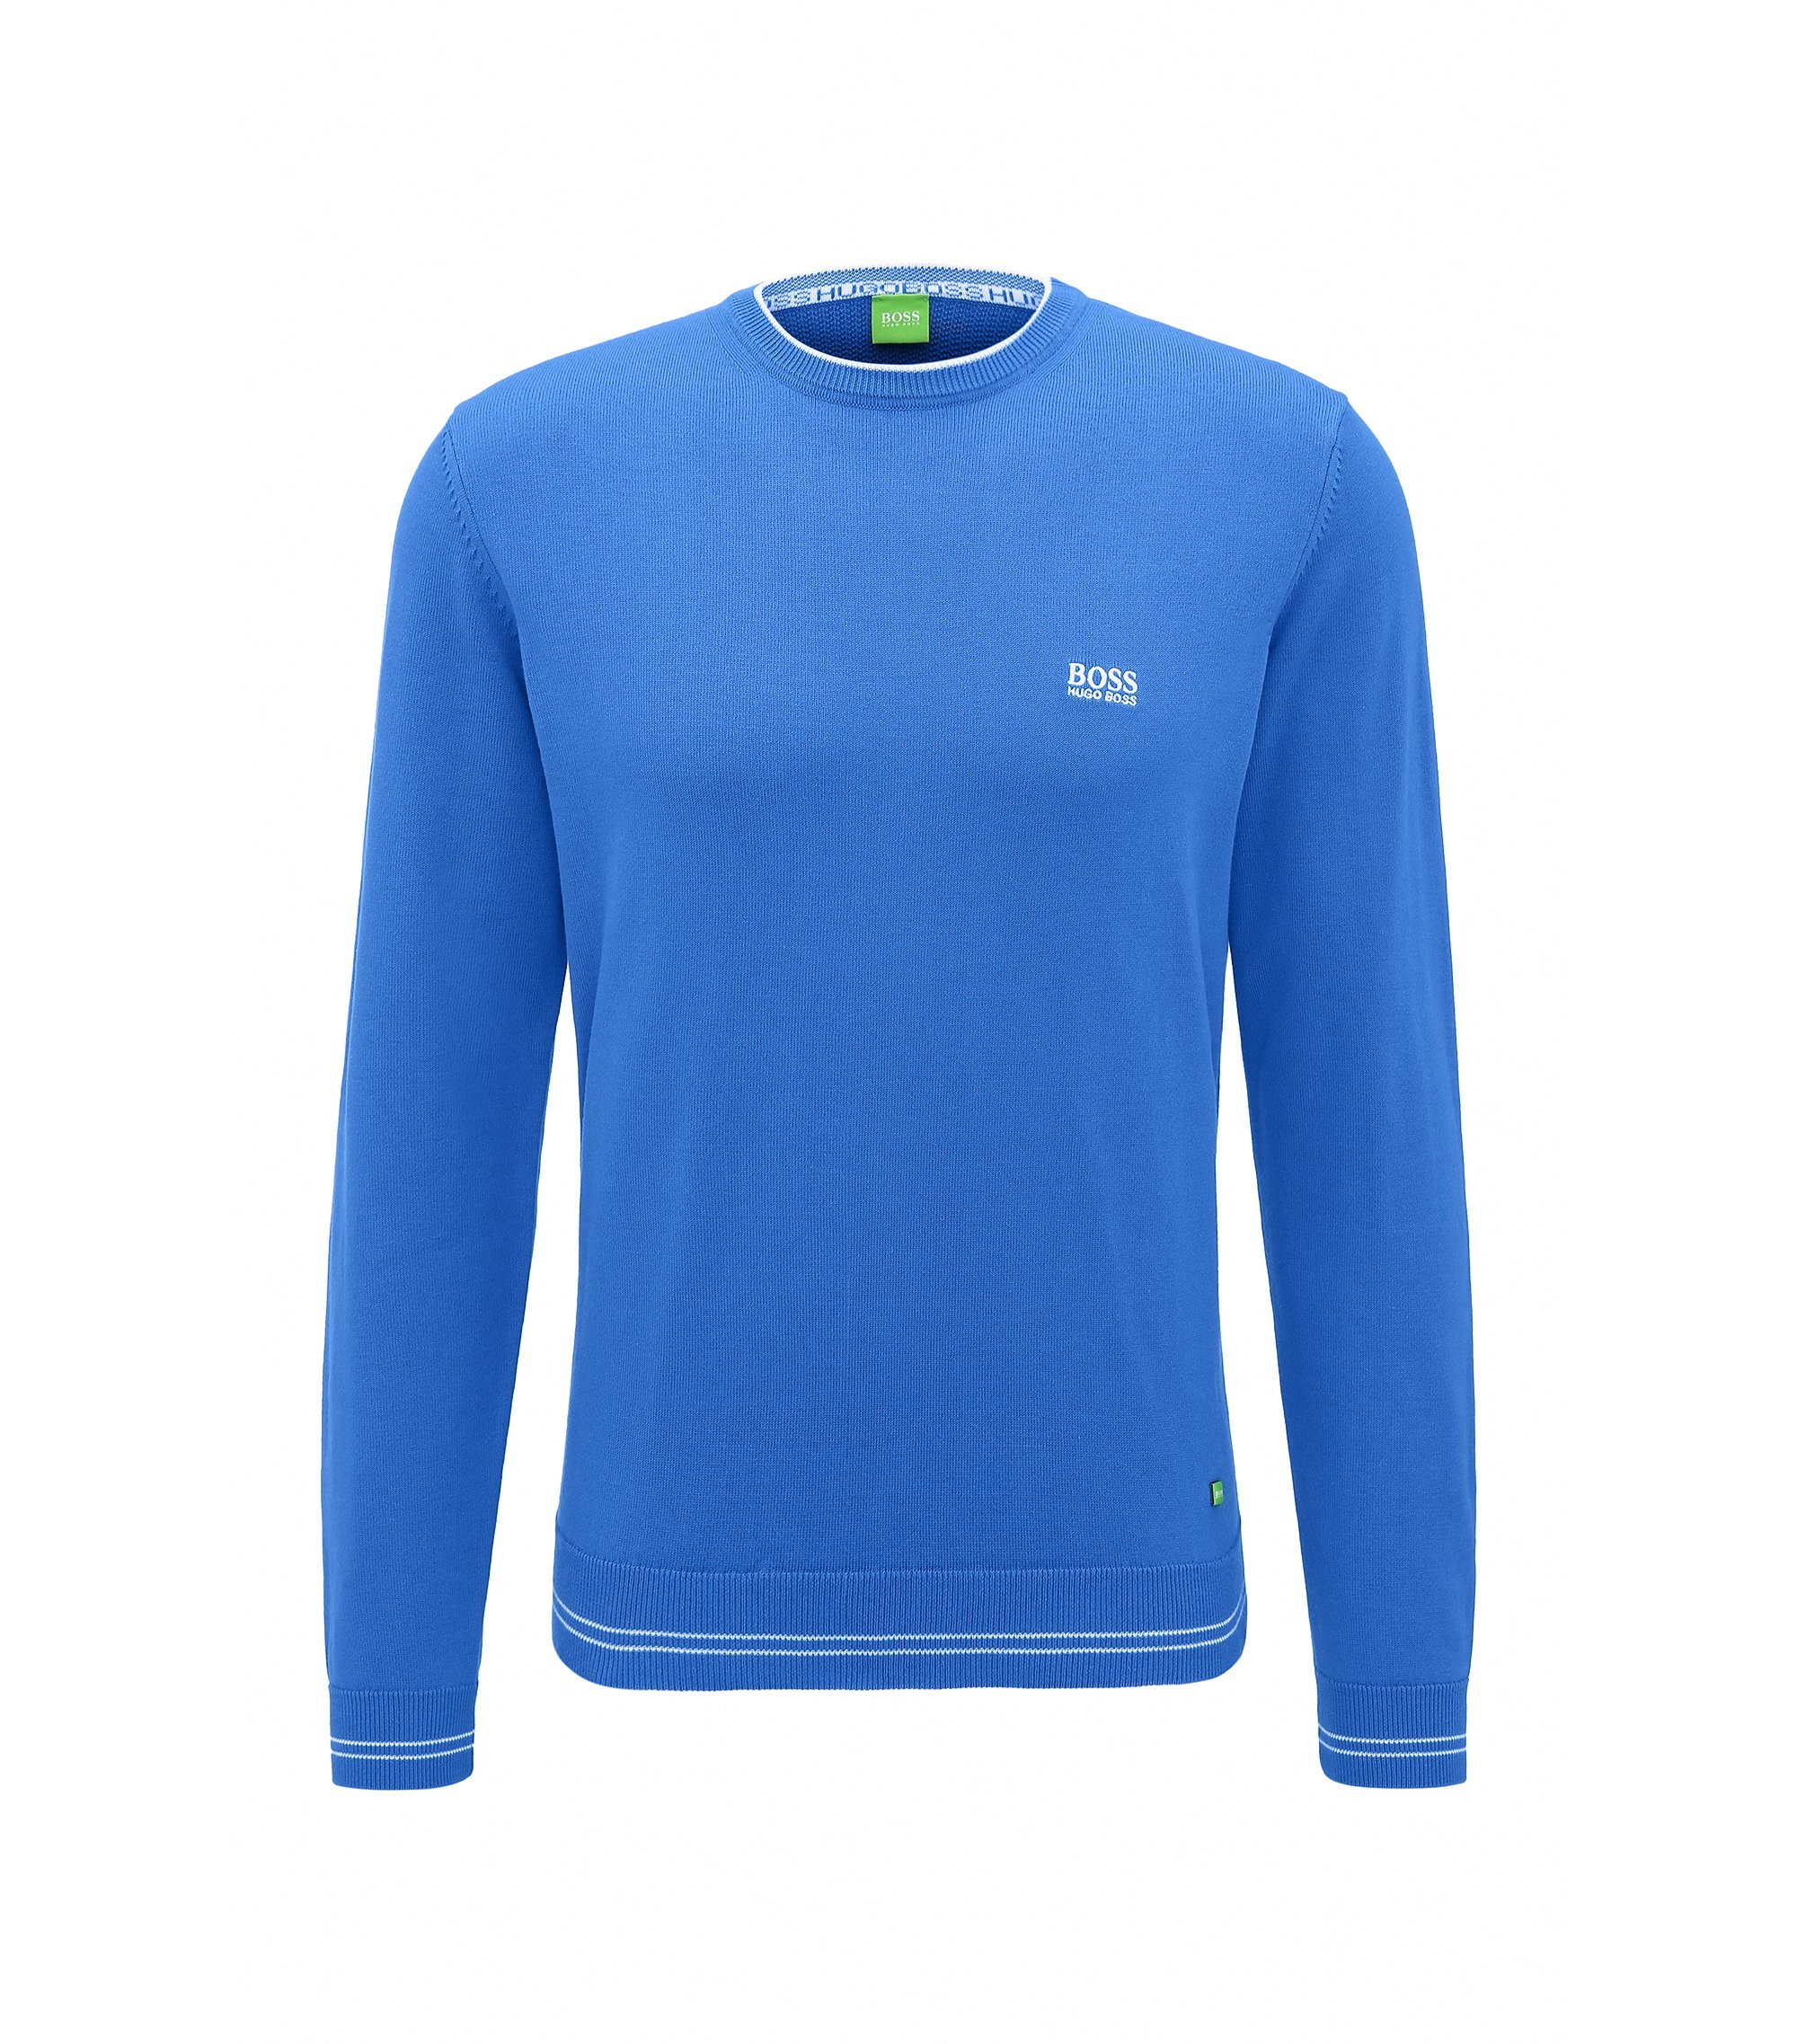 Cotton Blend Sweater | Rime, Open Blue